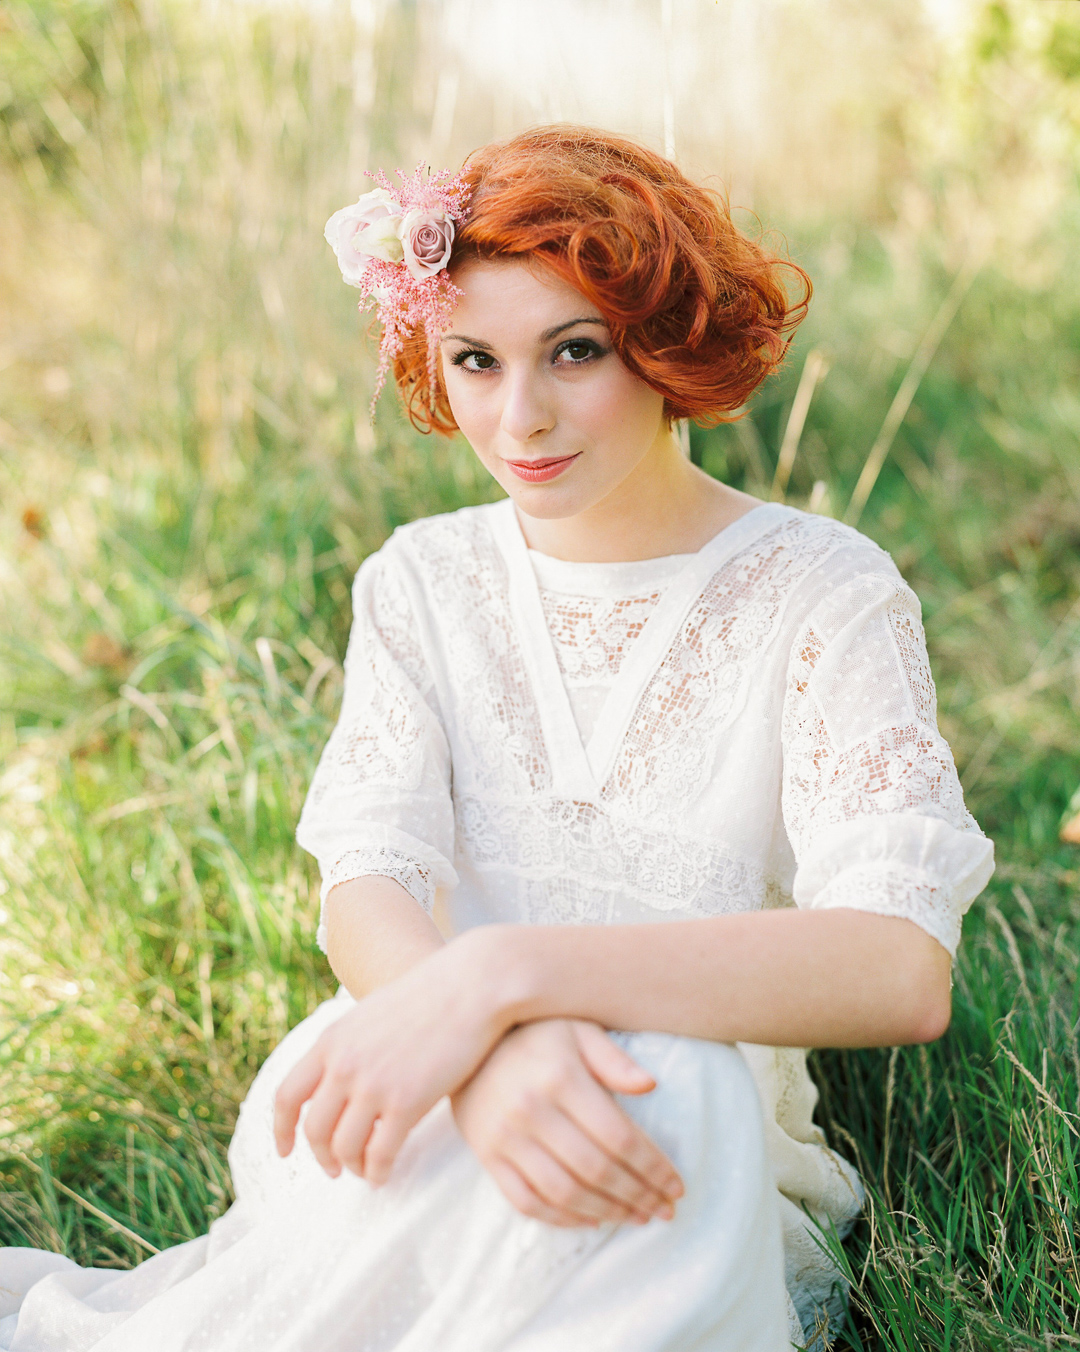 Festival Brides John Barwood Photography Styled Shoot86